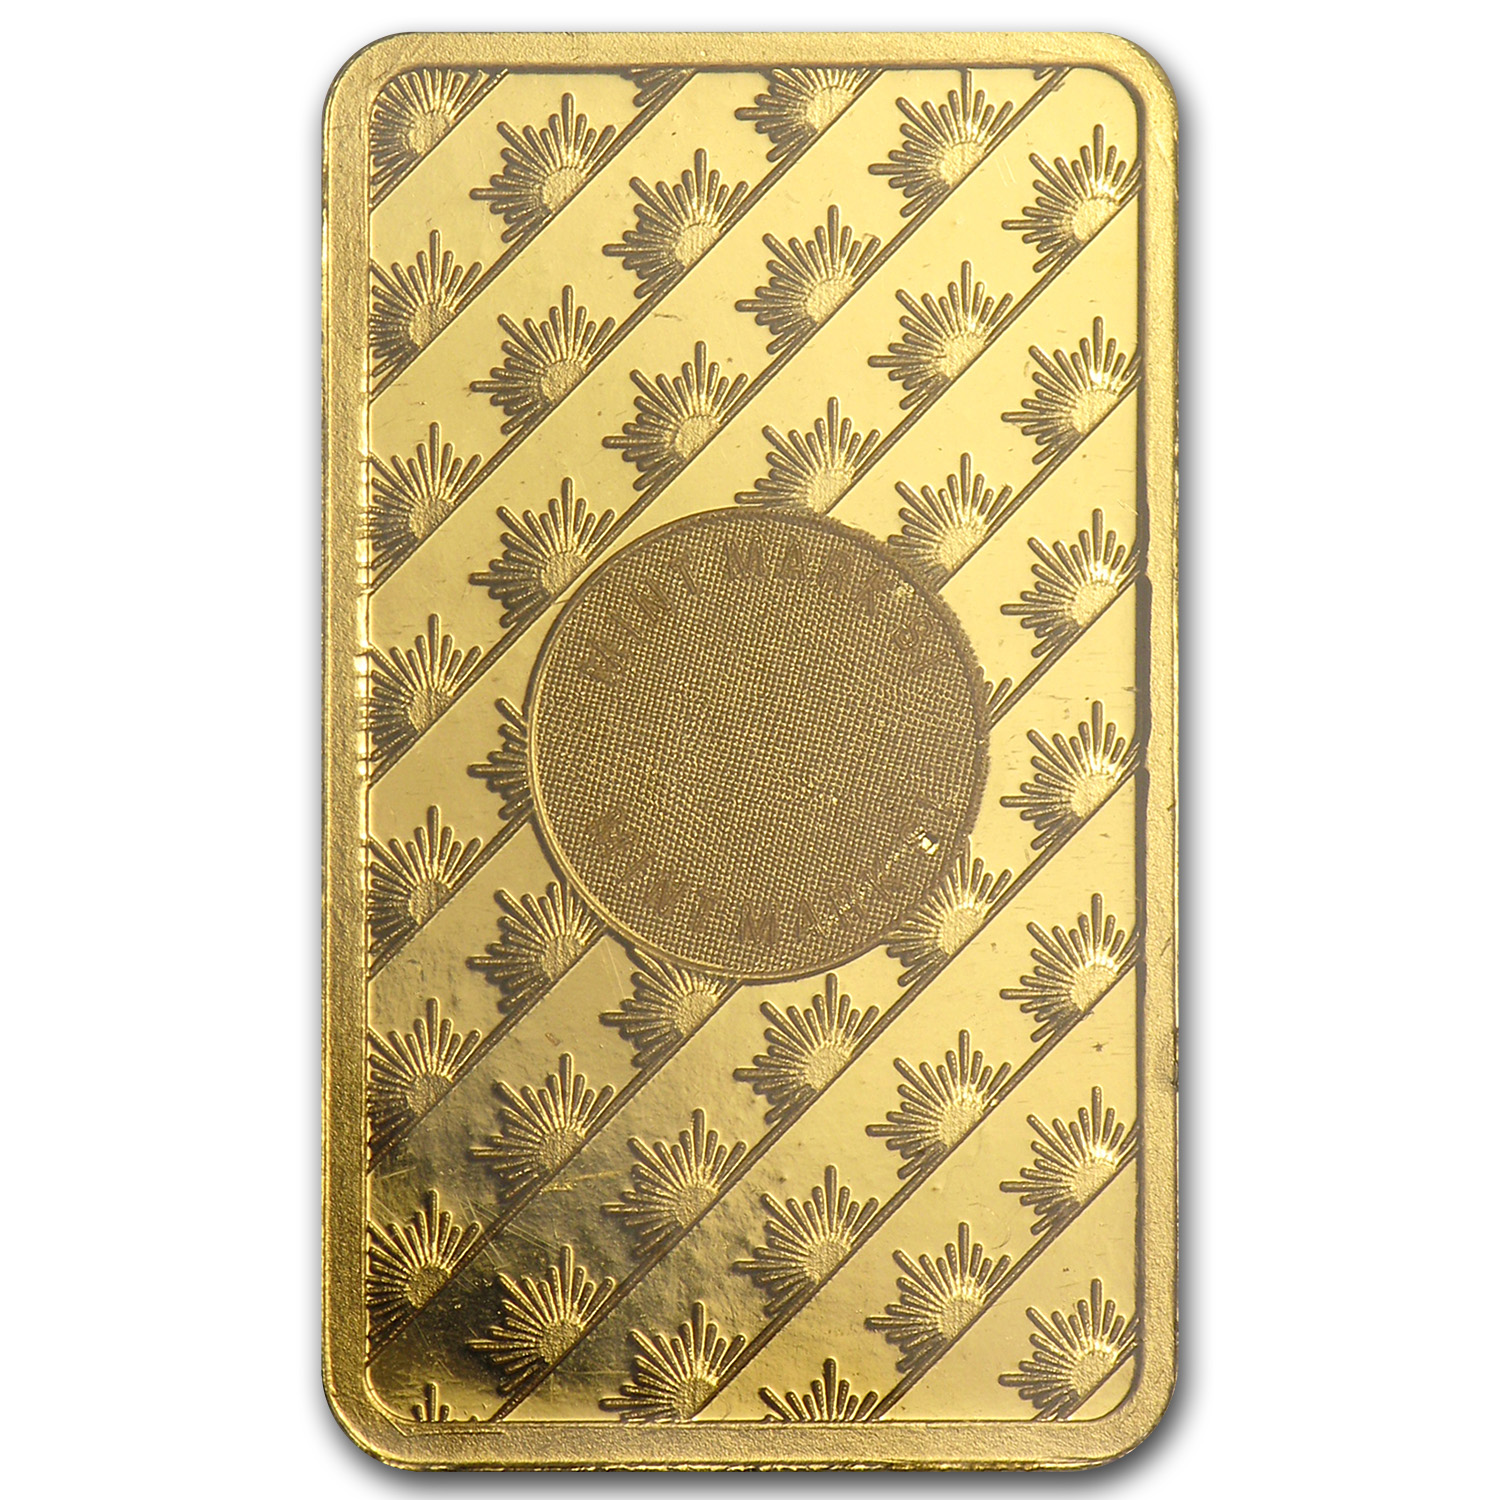 5 Gram Gold Bar - Sunshine Minting (New Design in TEP Packaging)